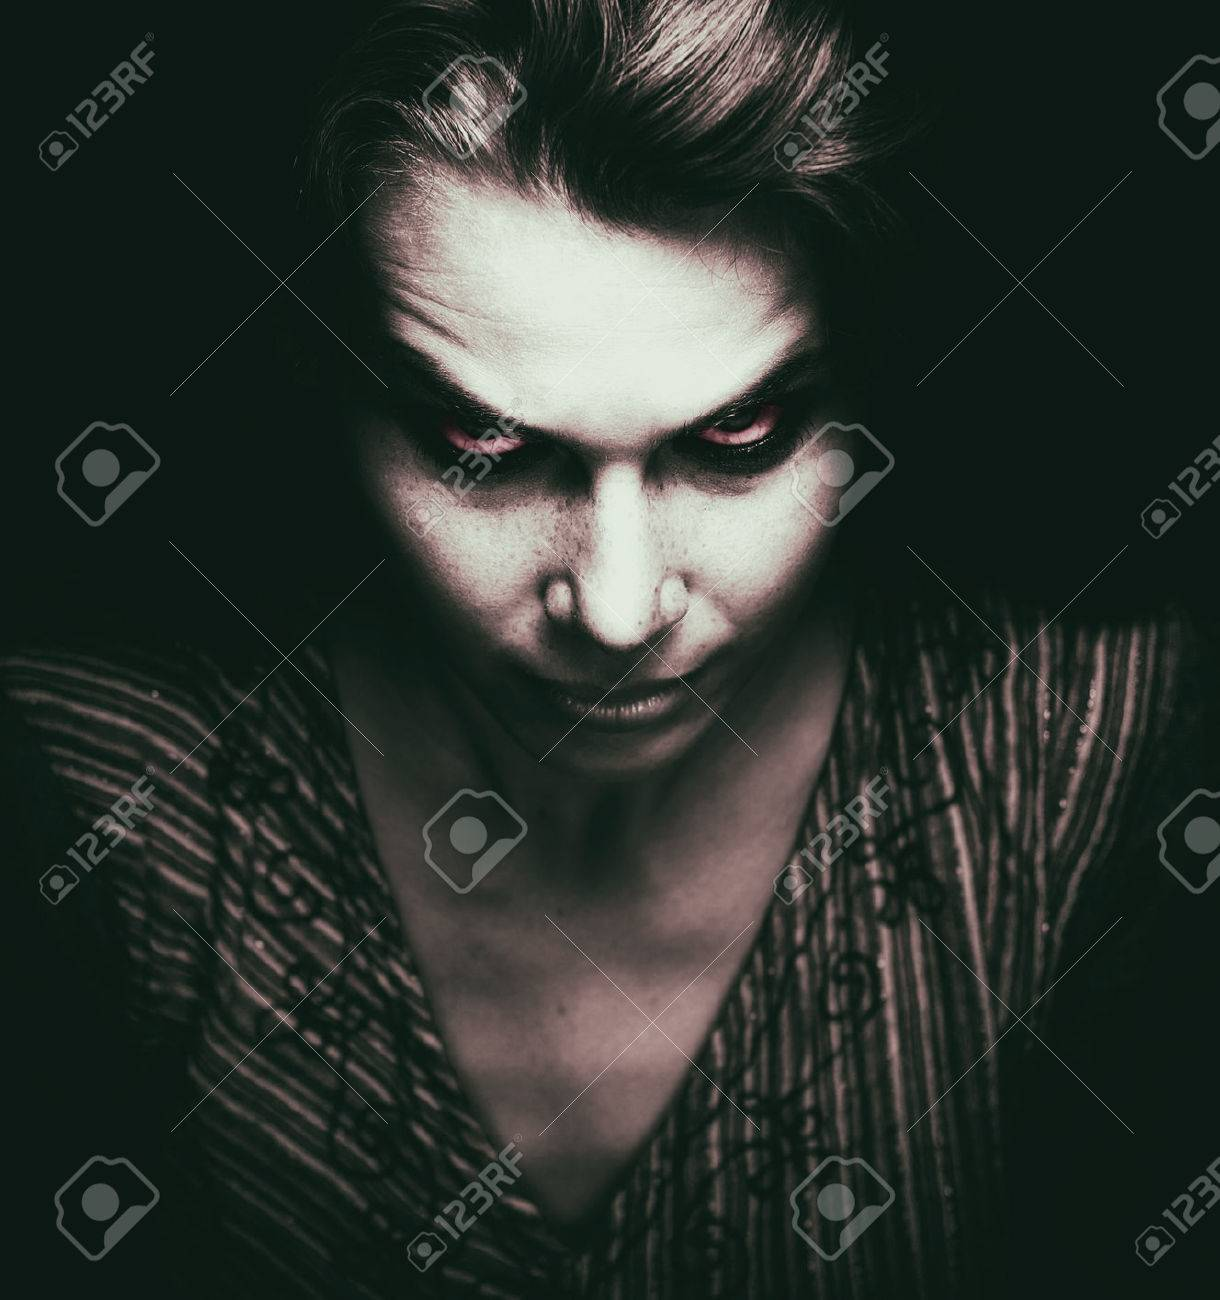 Face of scary woman with evil eyes in the dark Stock Photo - 55776128